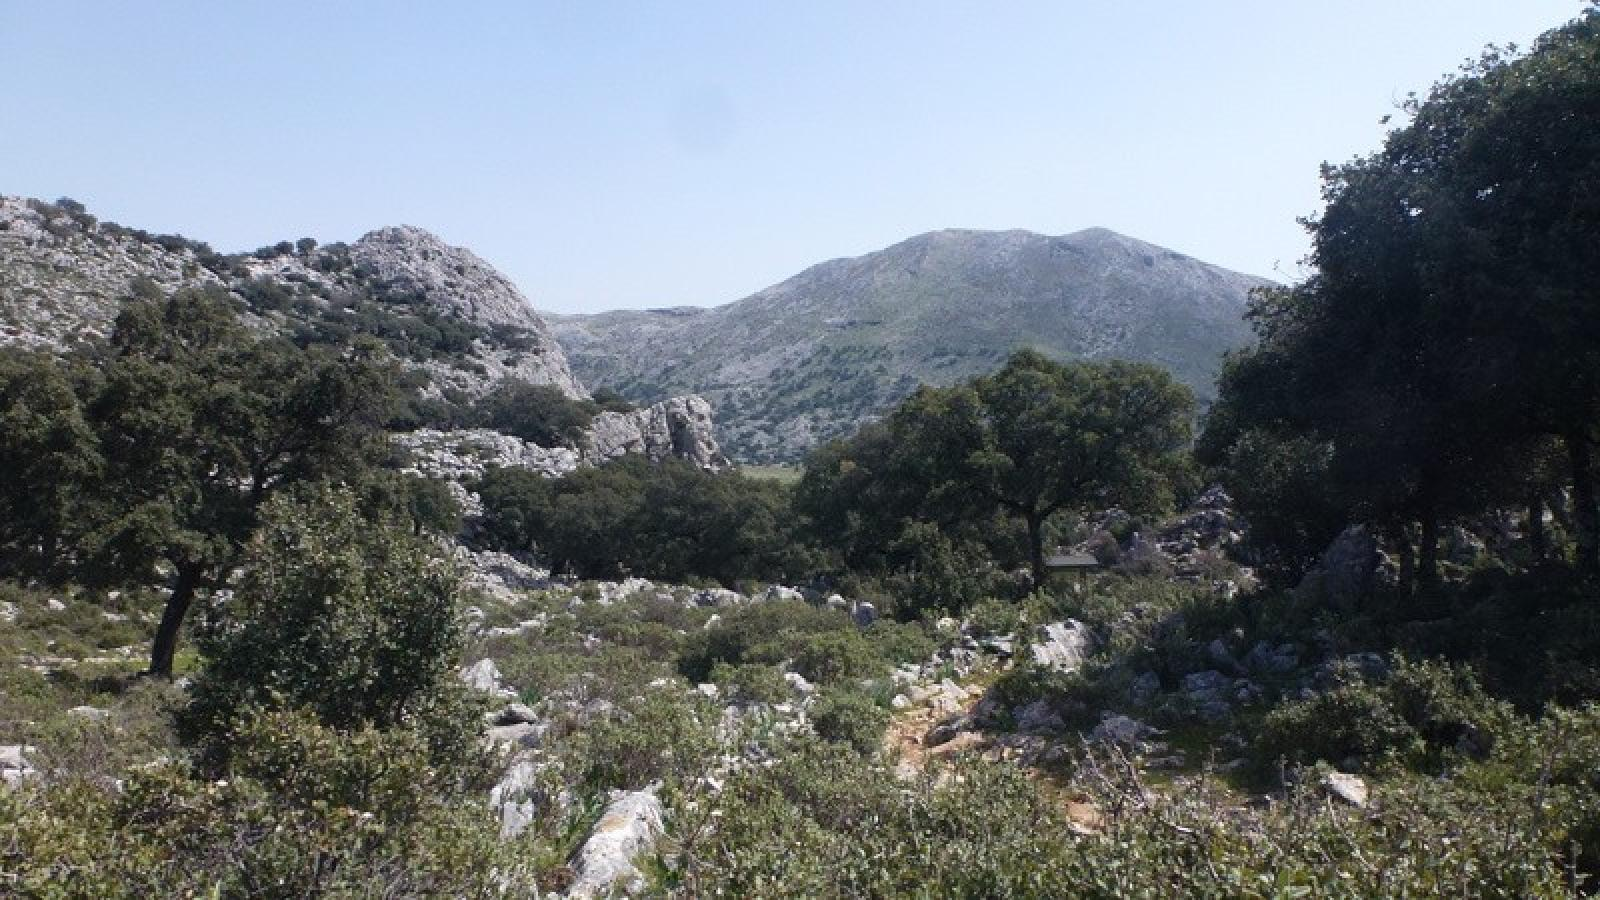 Photo of (Sierra de Grazalema) Llanos del Republicano, Puerto del Correo 1025m